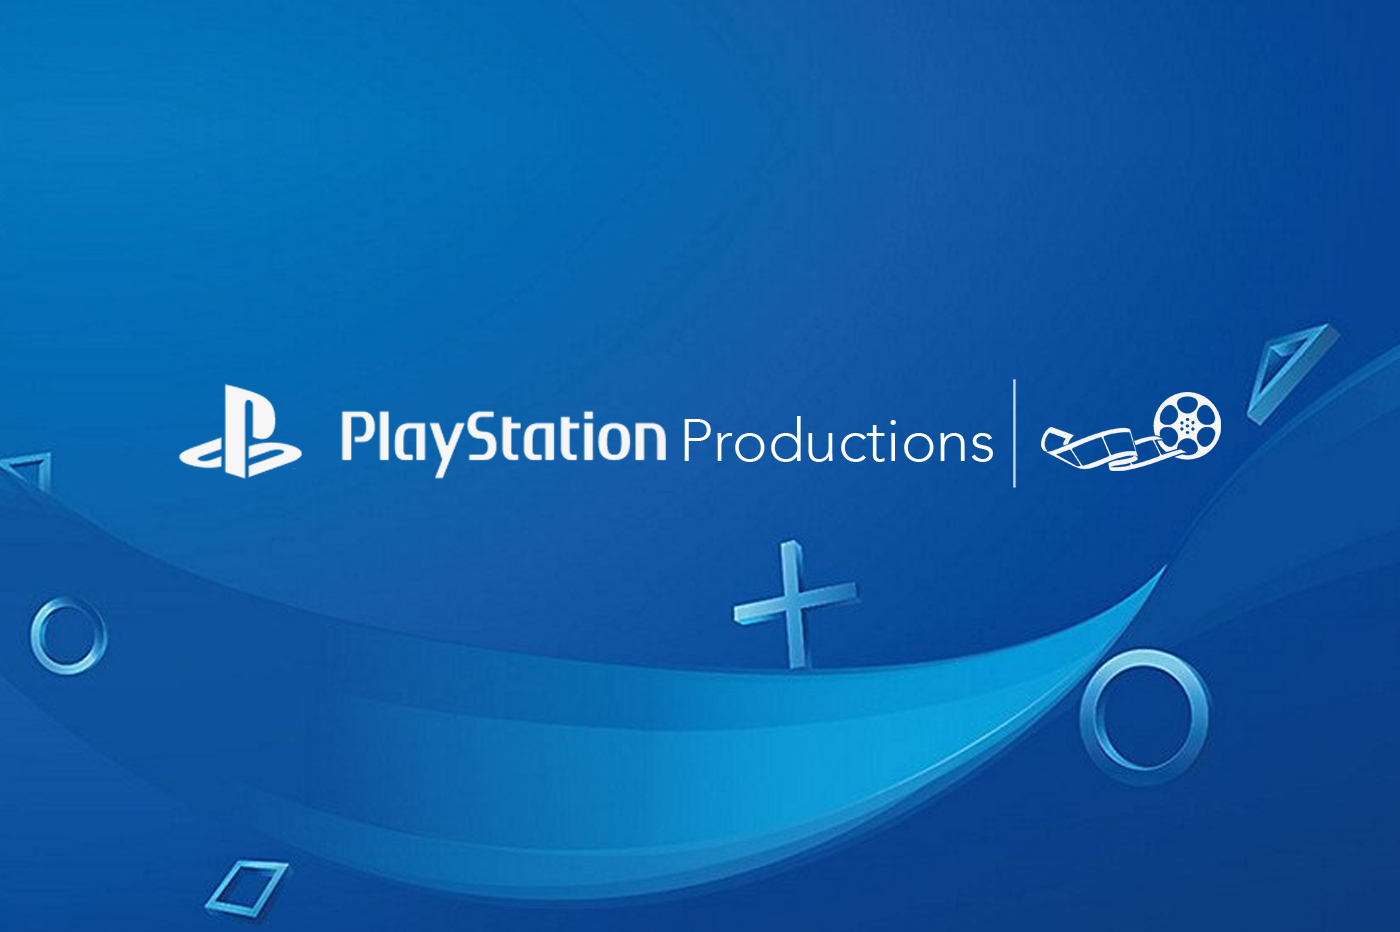 PlayStation Productions, Sony